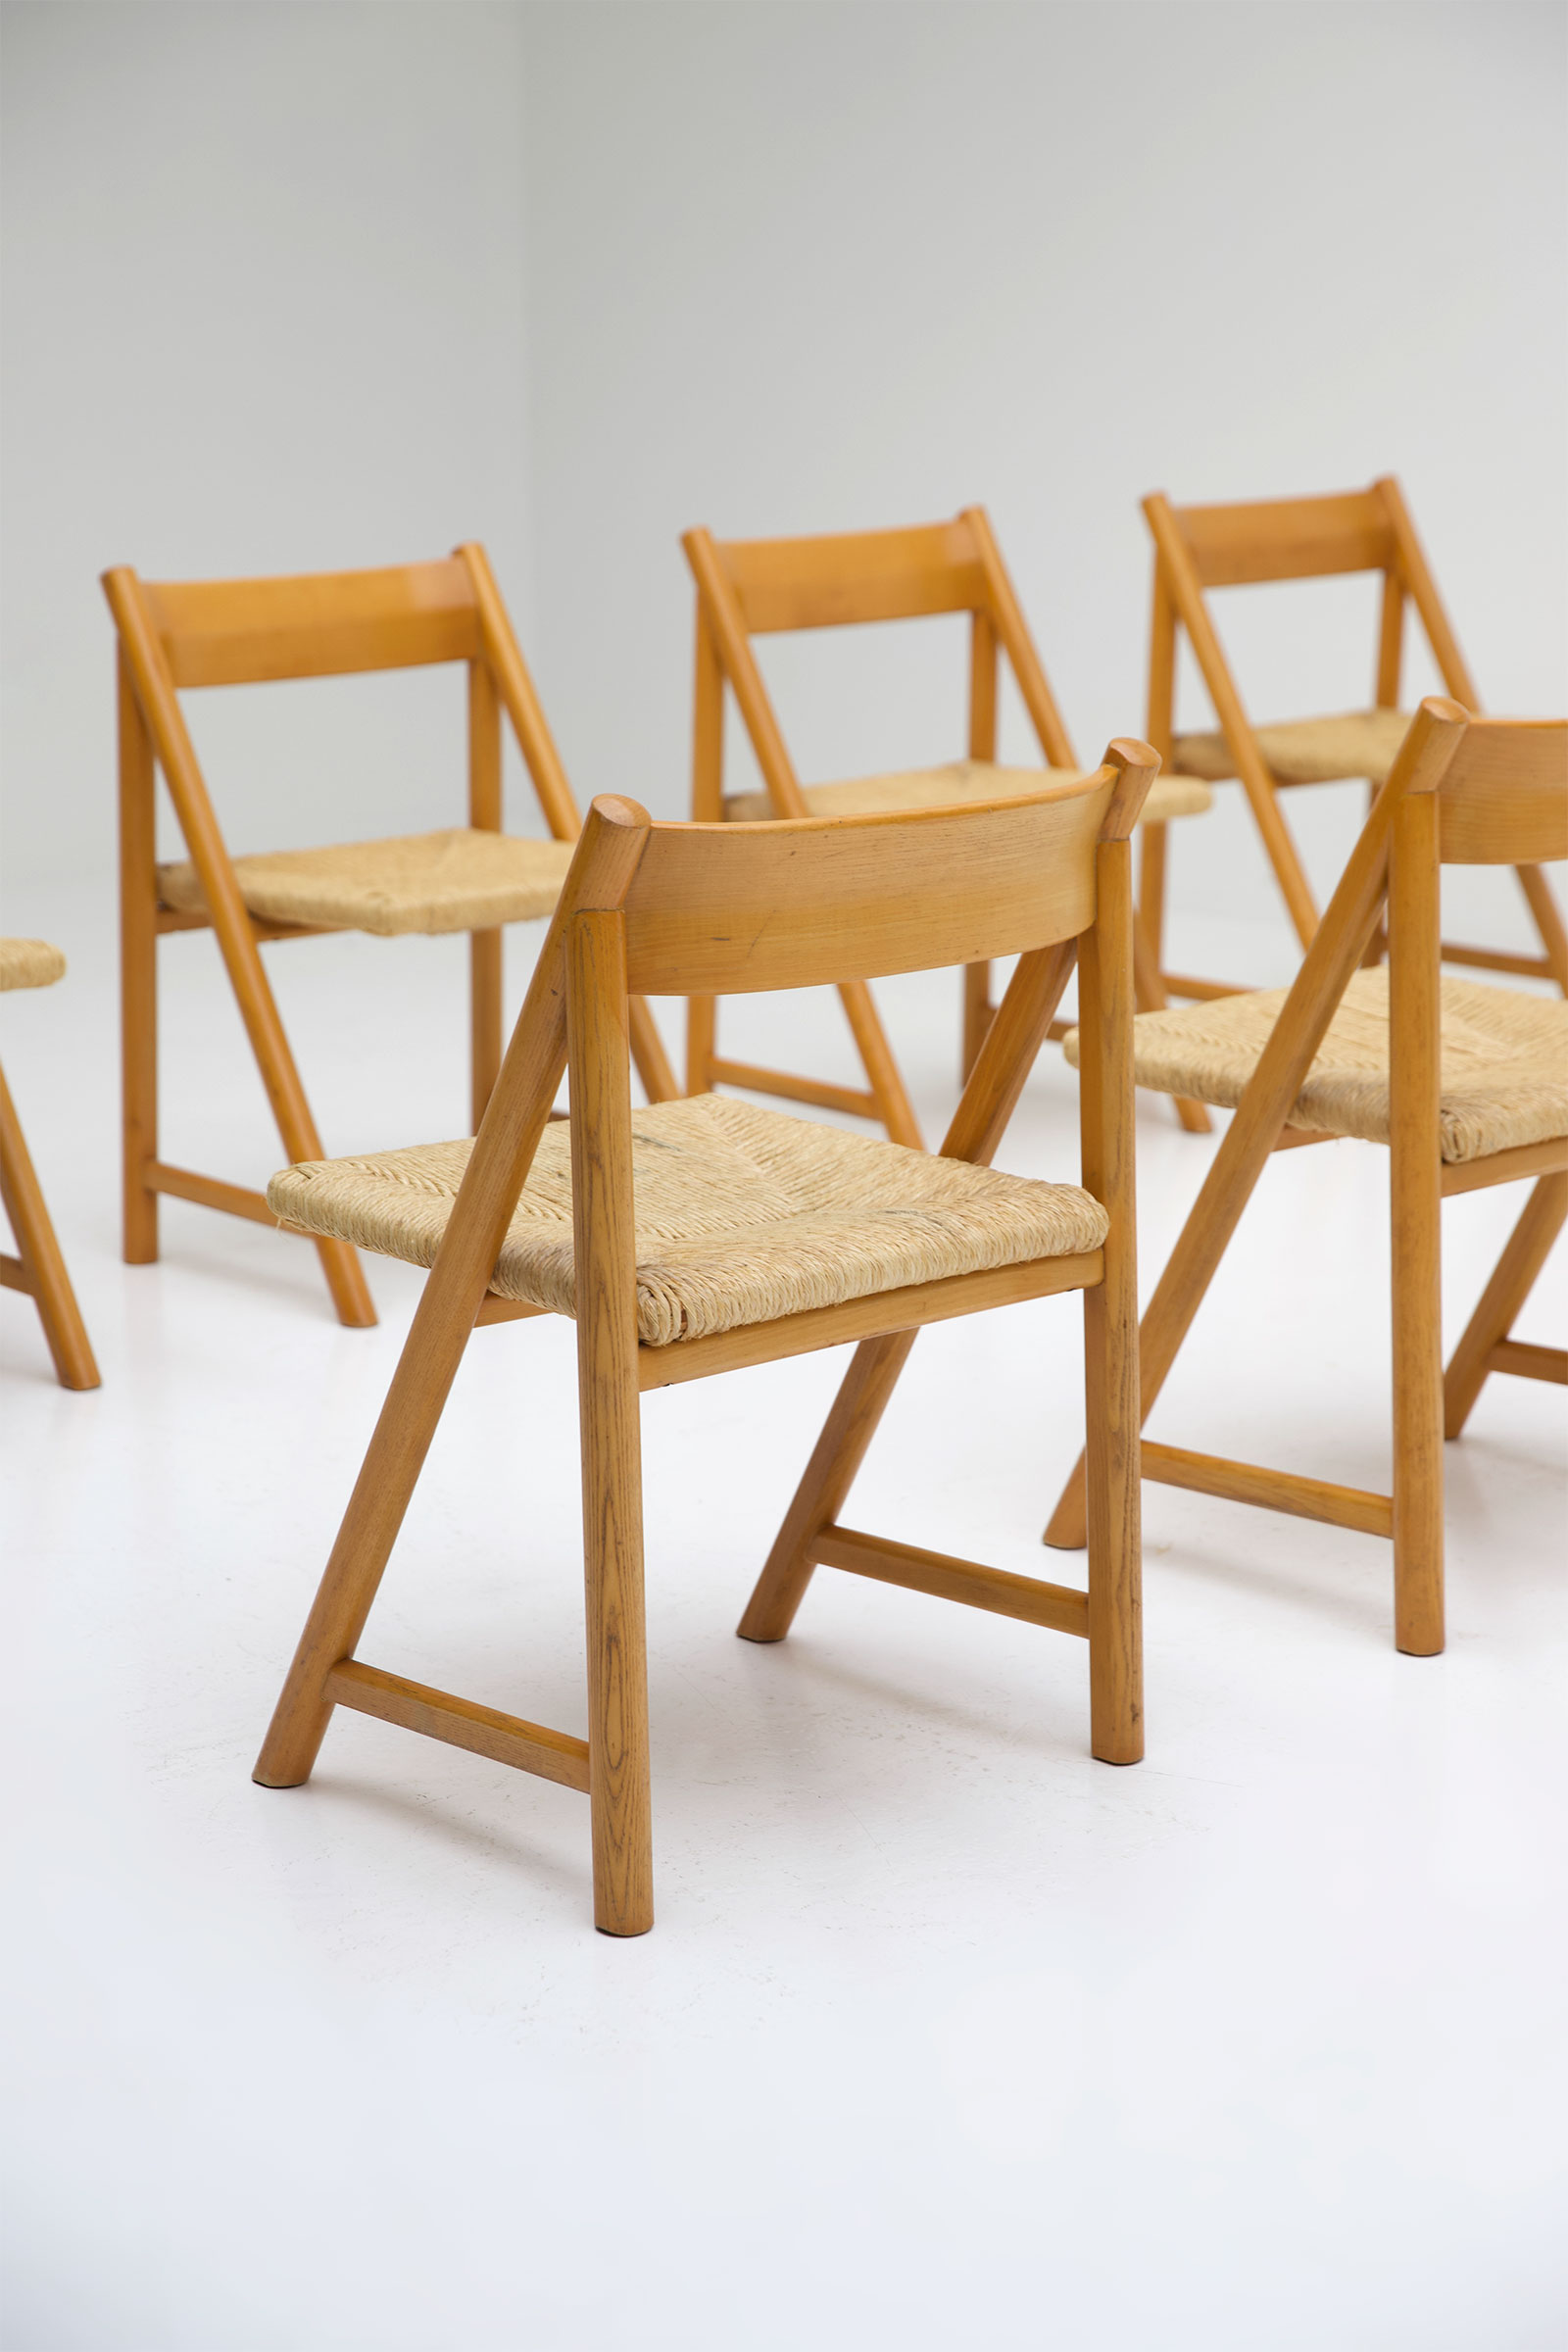 1960s Woven Cane Chairsimage 3